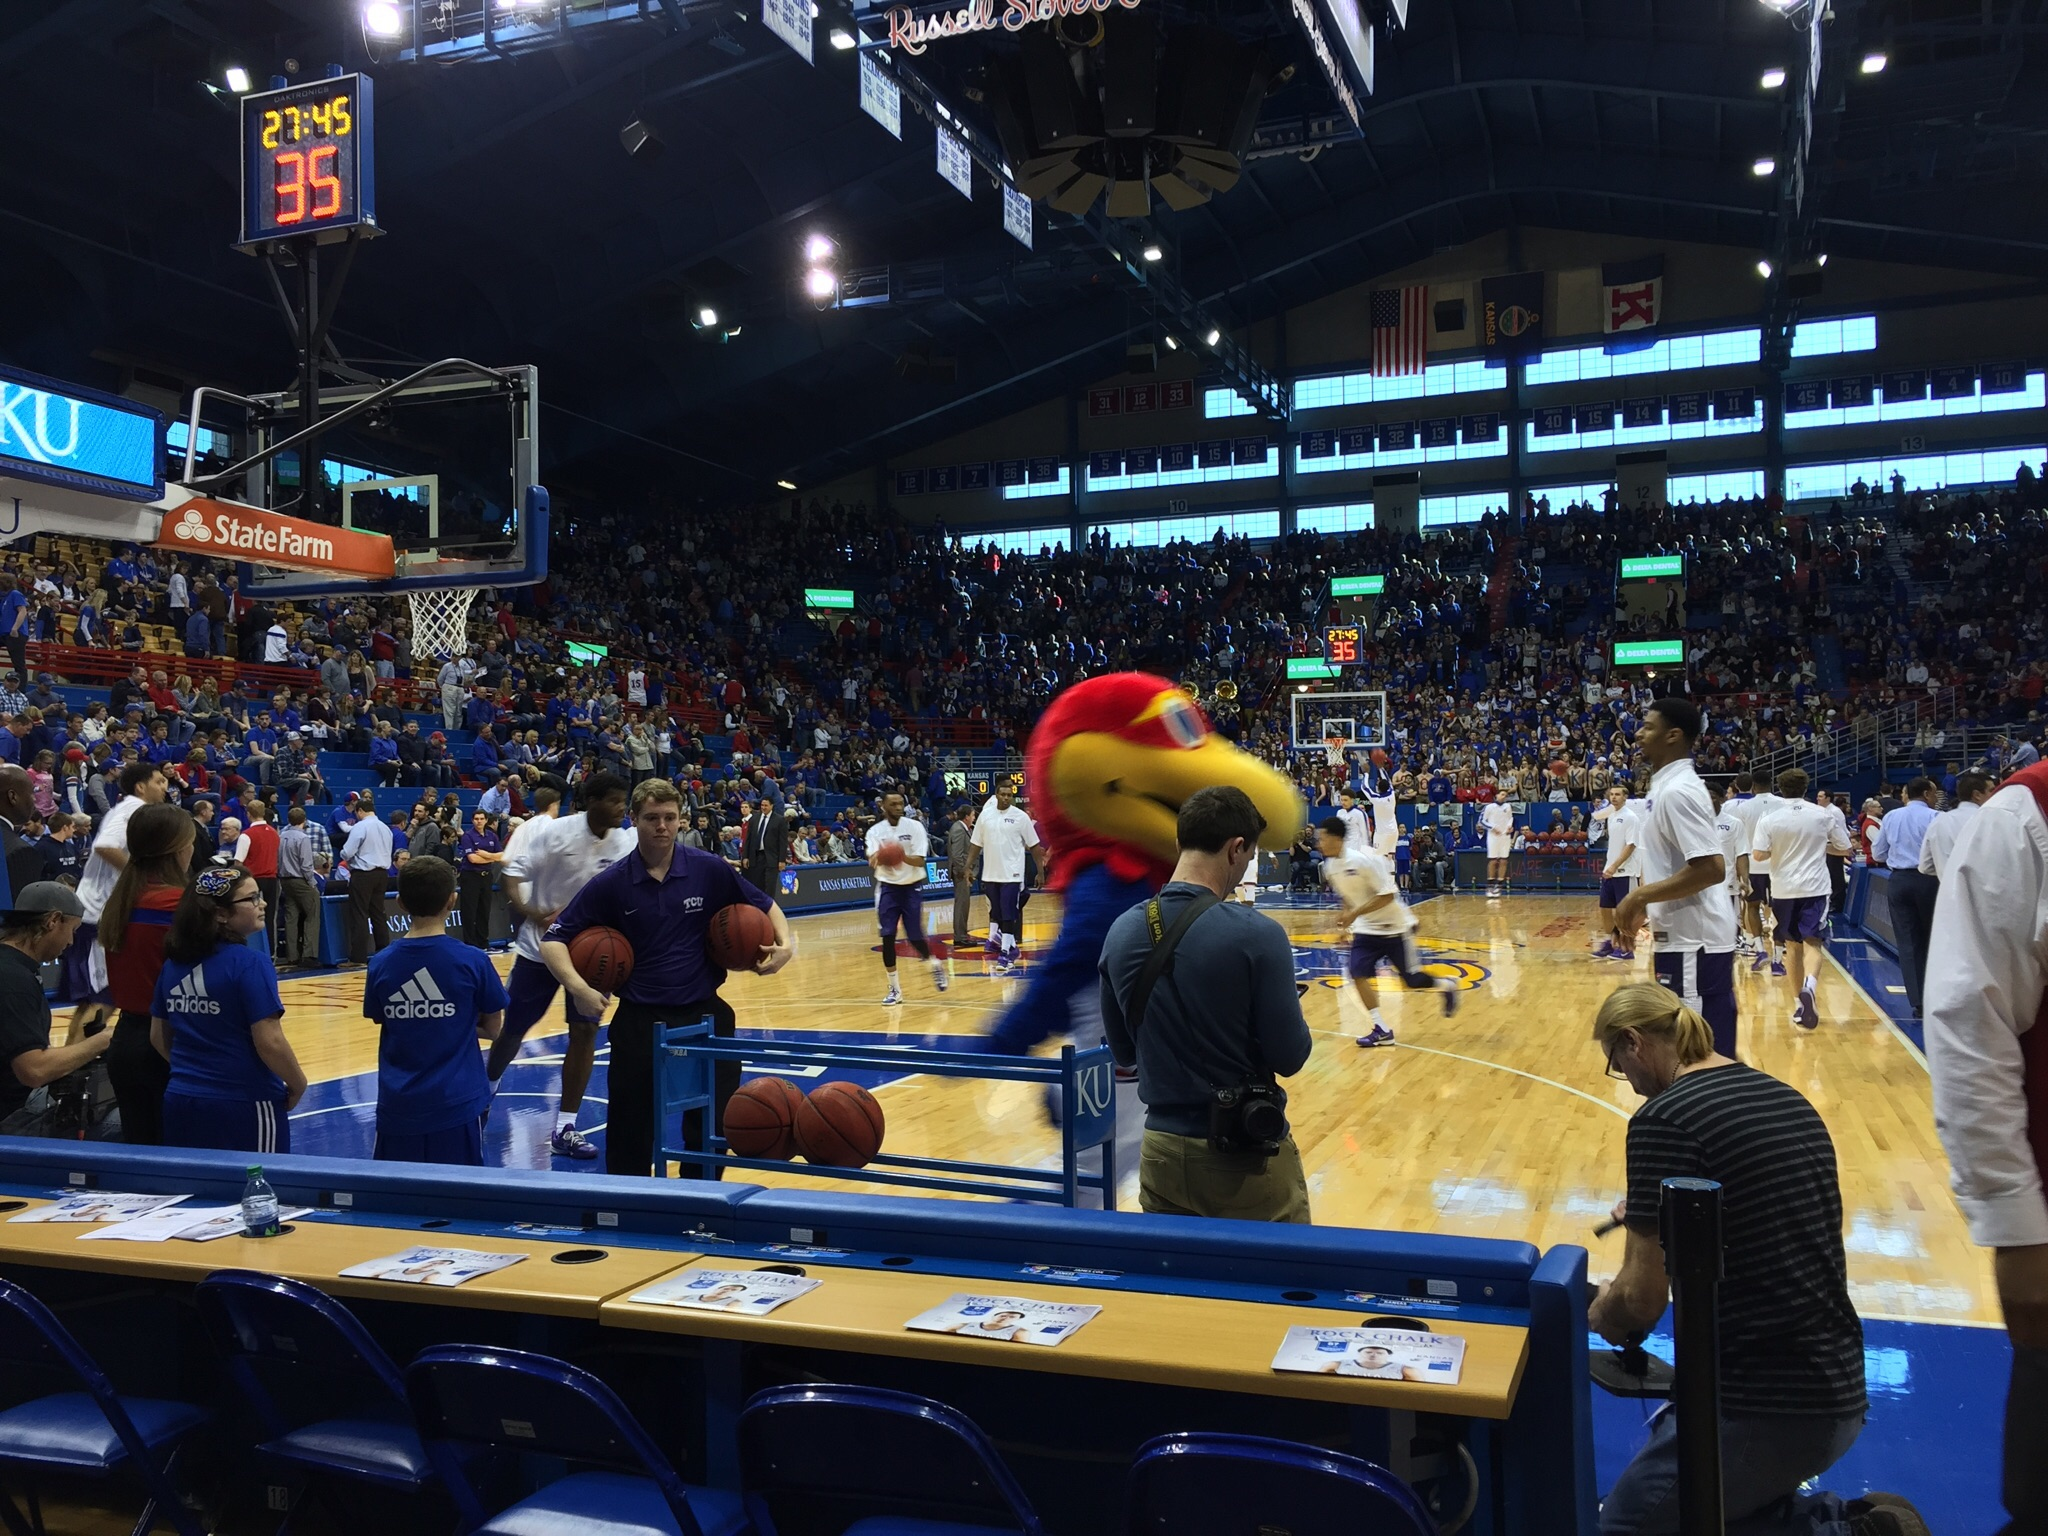 The floor at Allen Fieldhouse. Photo by Ryan Landreth.